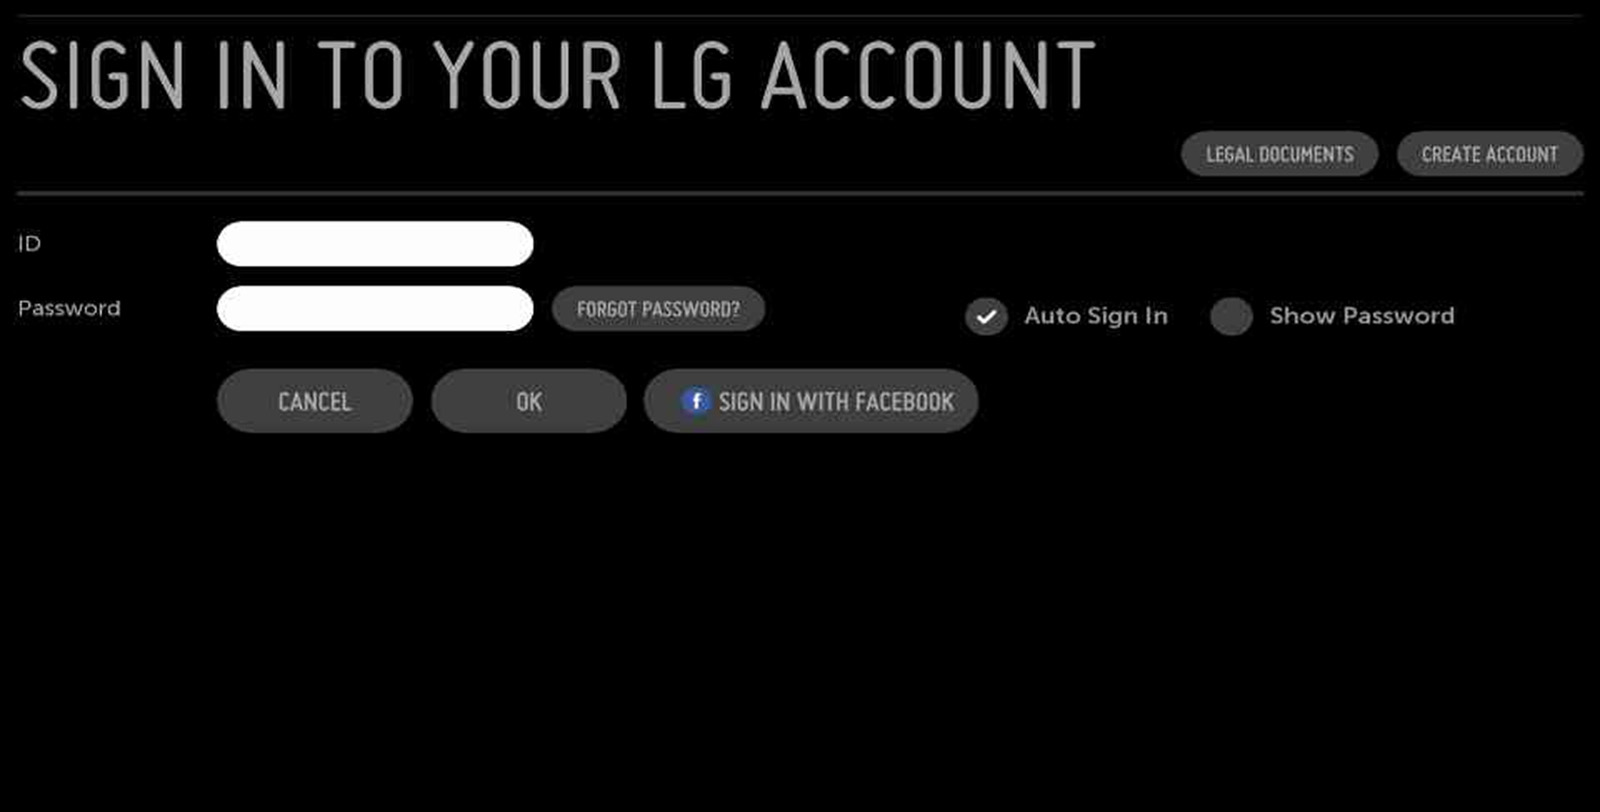 Lg Help Library Webos 20 Settings Menu Usa Edge Lite Exit Sign Wiring Diagram Note This Account Will Pertain To The Use Of Any Smart Tv Or Blu Ray Player A Separate Is Required For Product Registration And Access